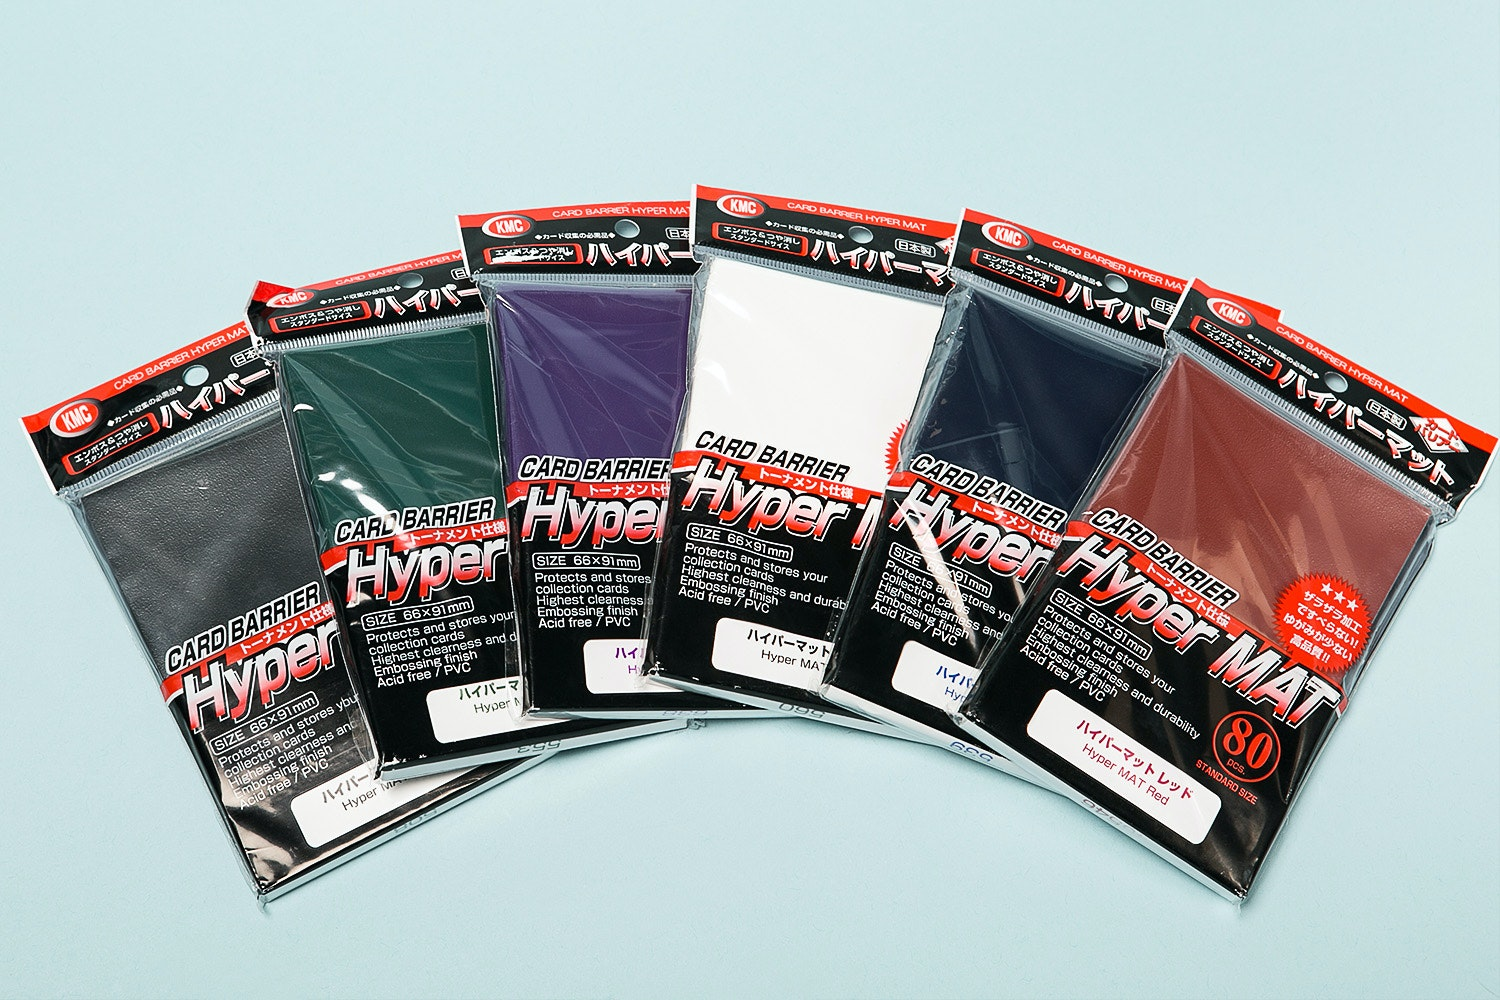 KMC Hyper Mat Sleeves 80ct (6-Pack)